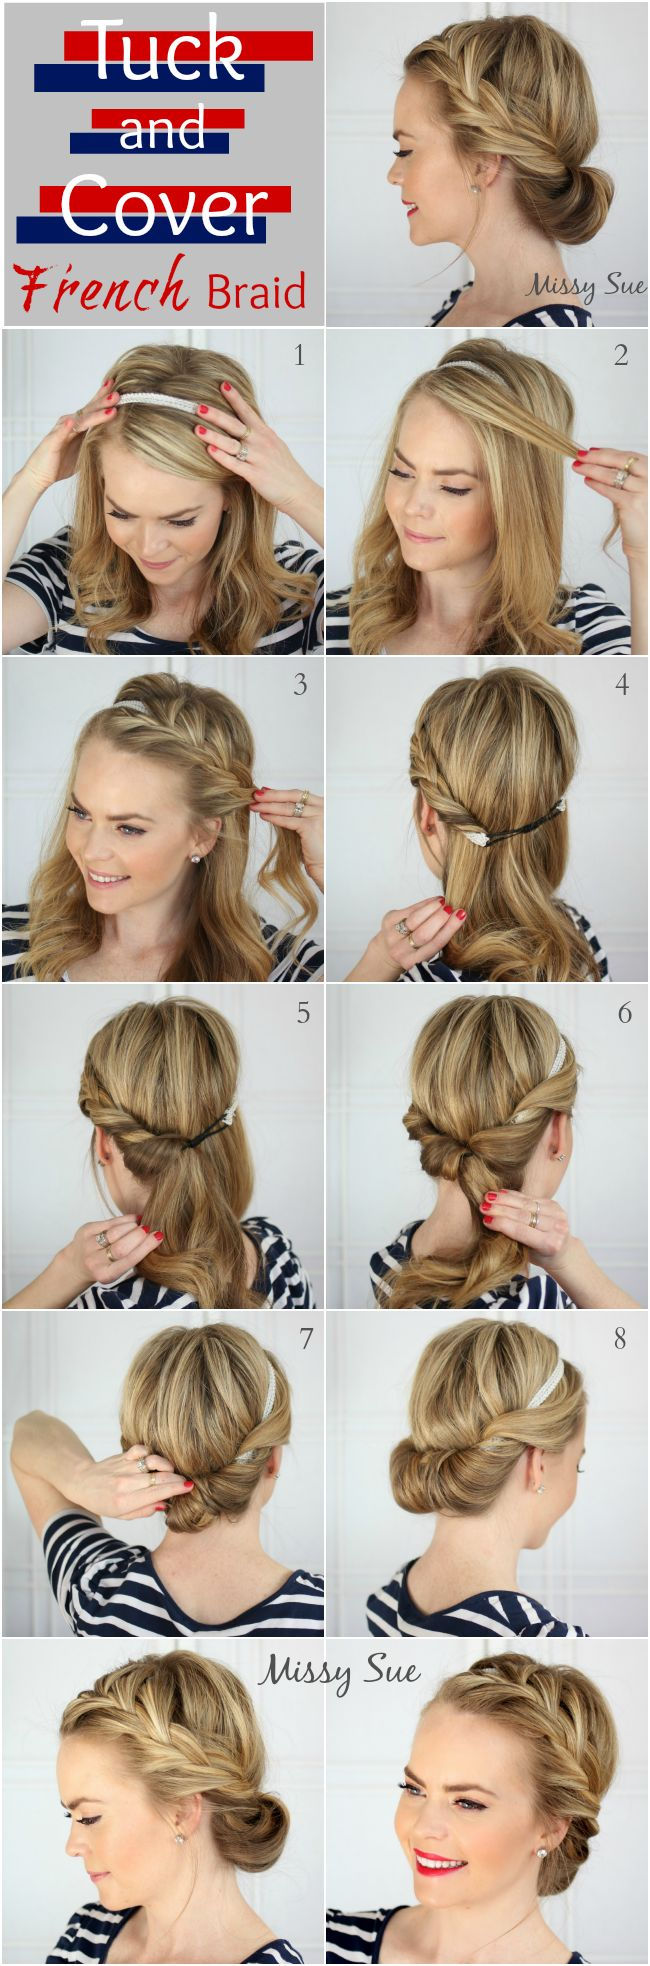 twisted Frech diy braid wedding hairstyles for long hair